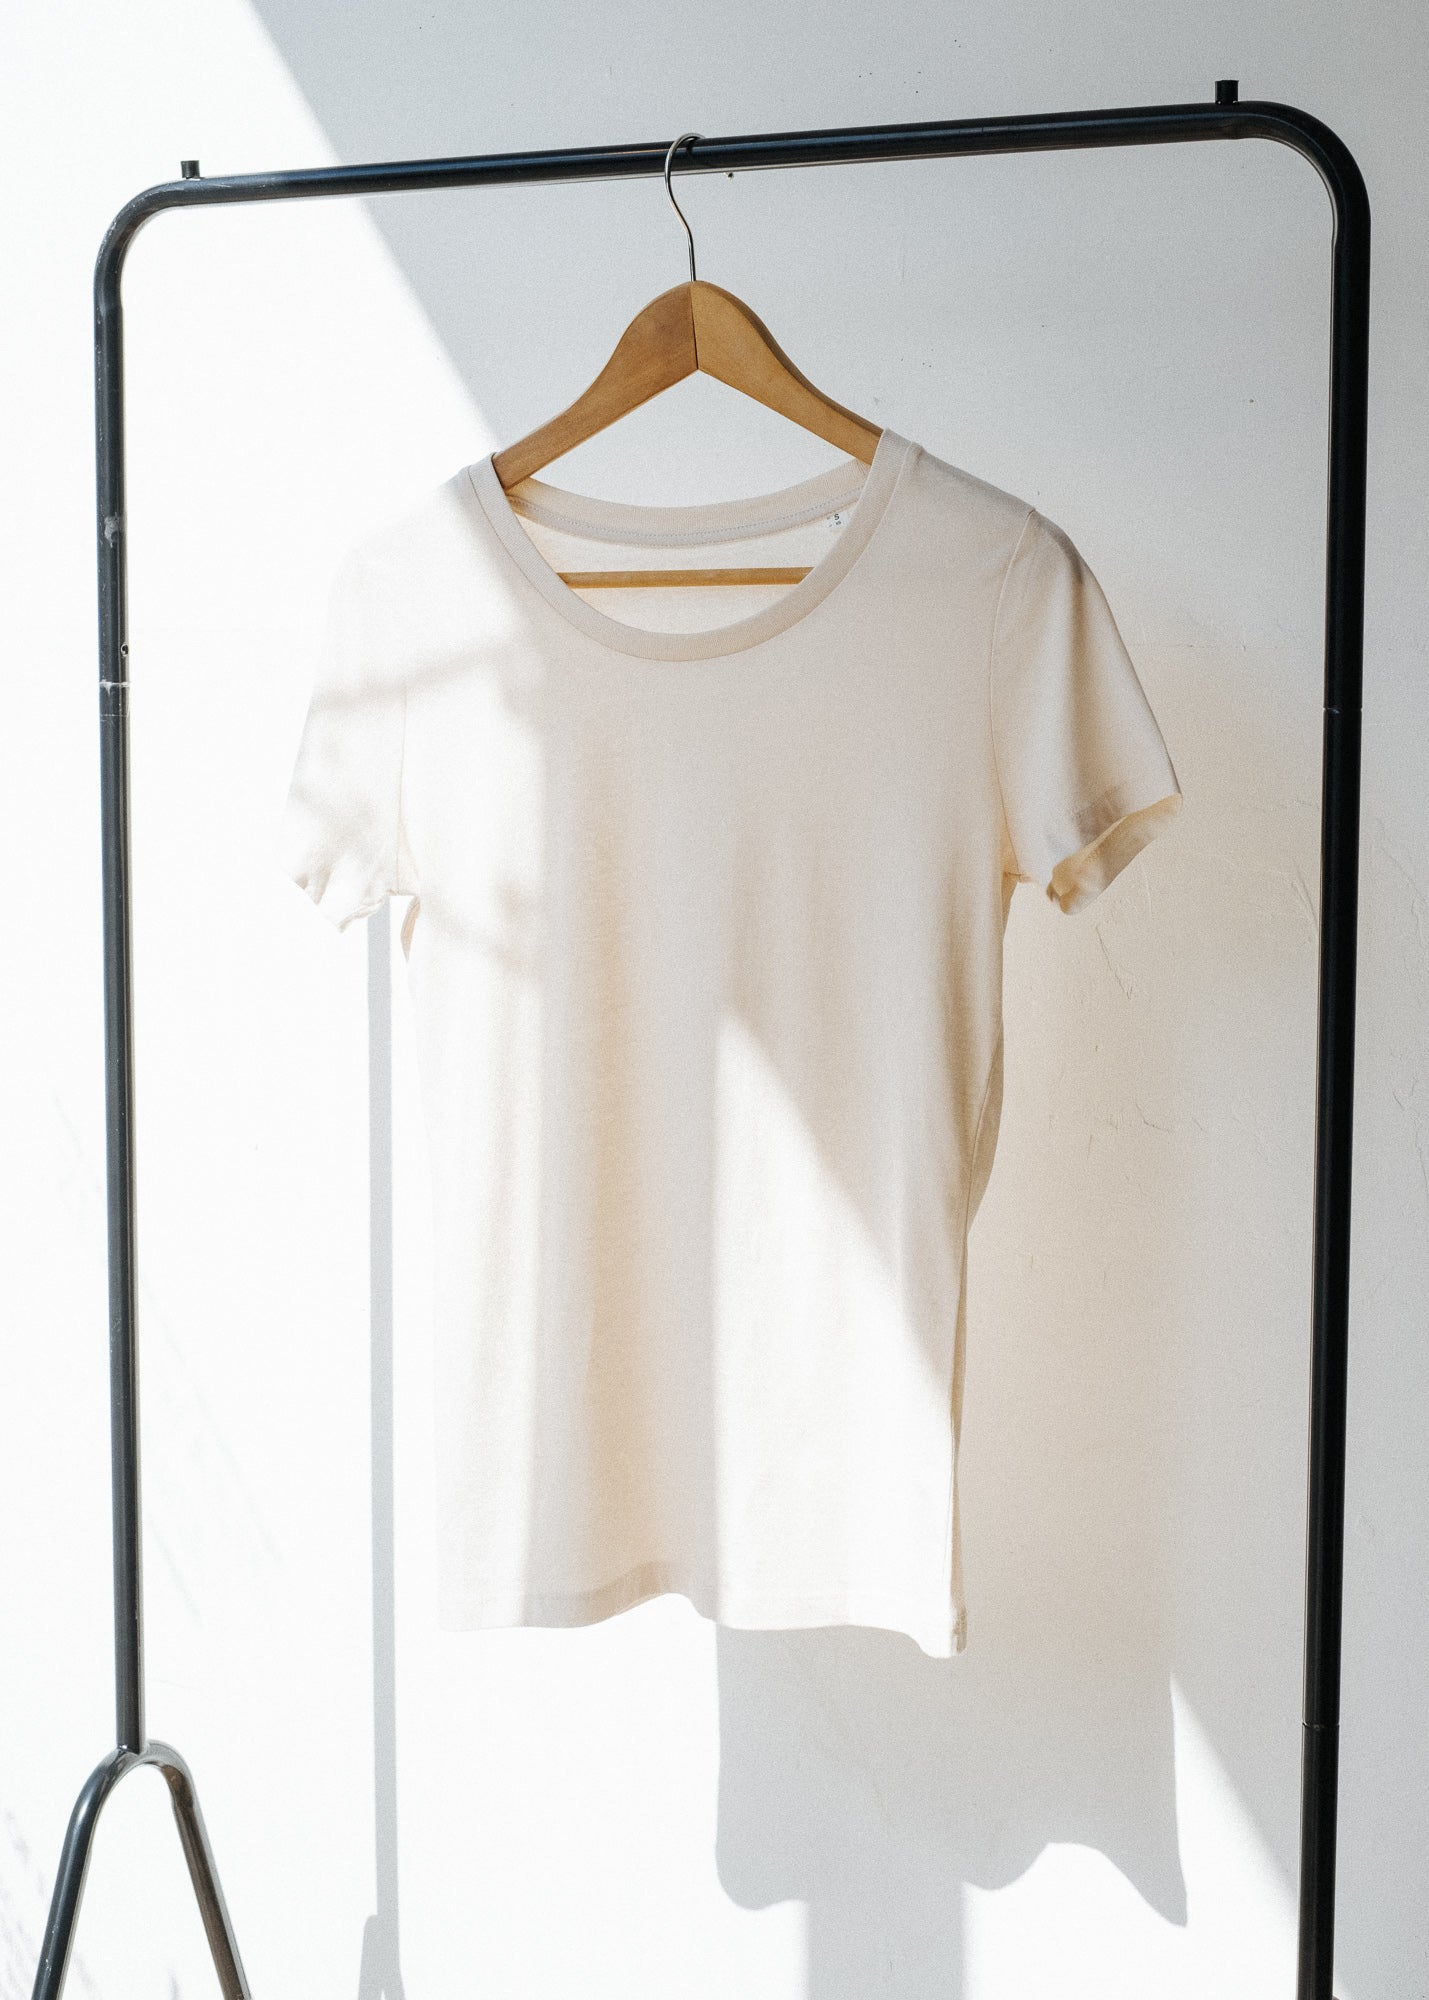 She Expresses in Vintage White-T-shirt-Sancho's Dress